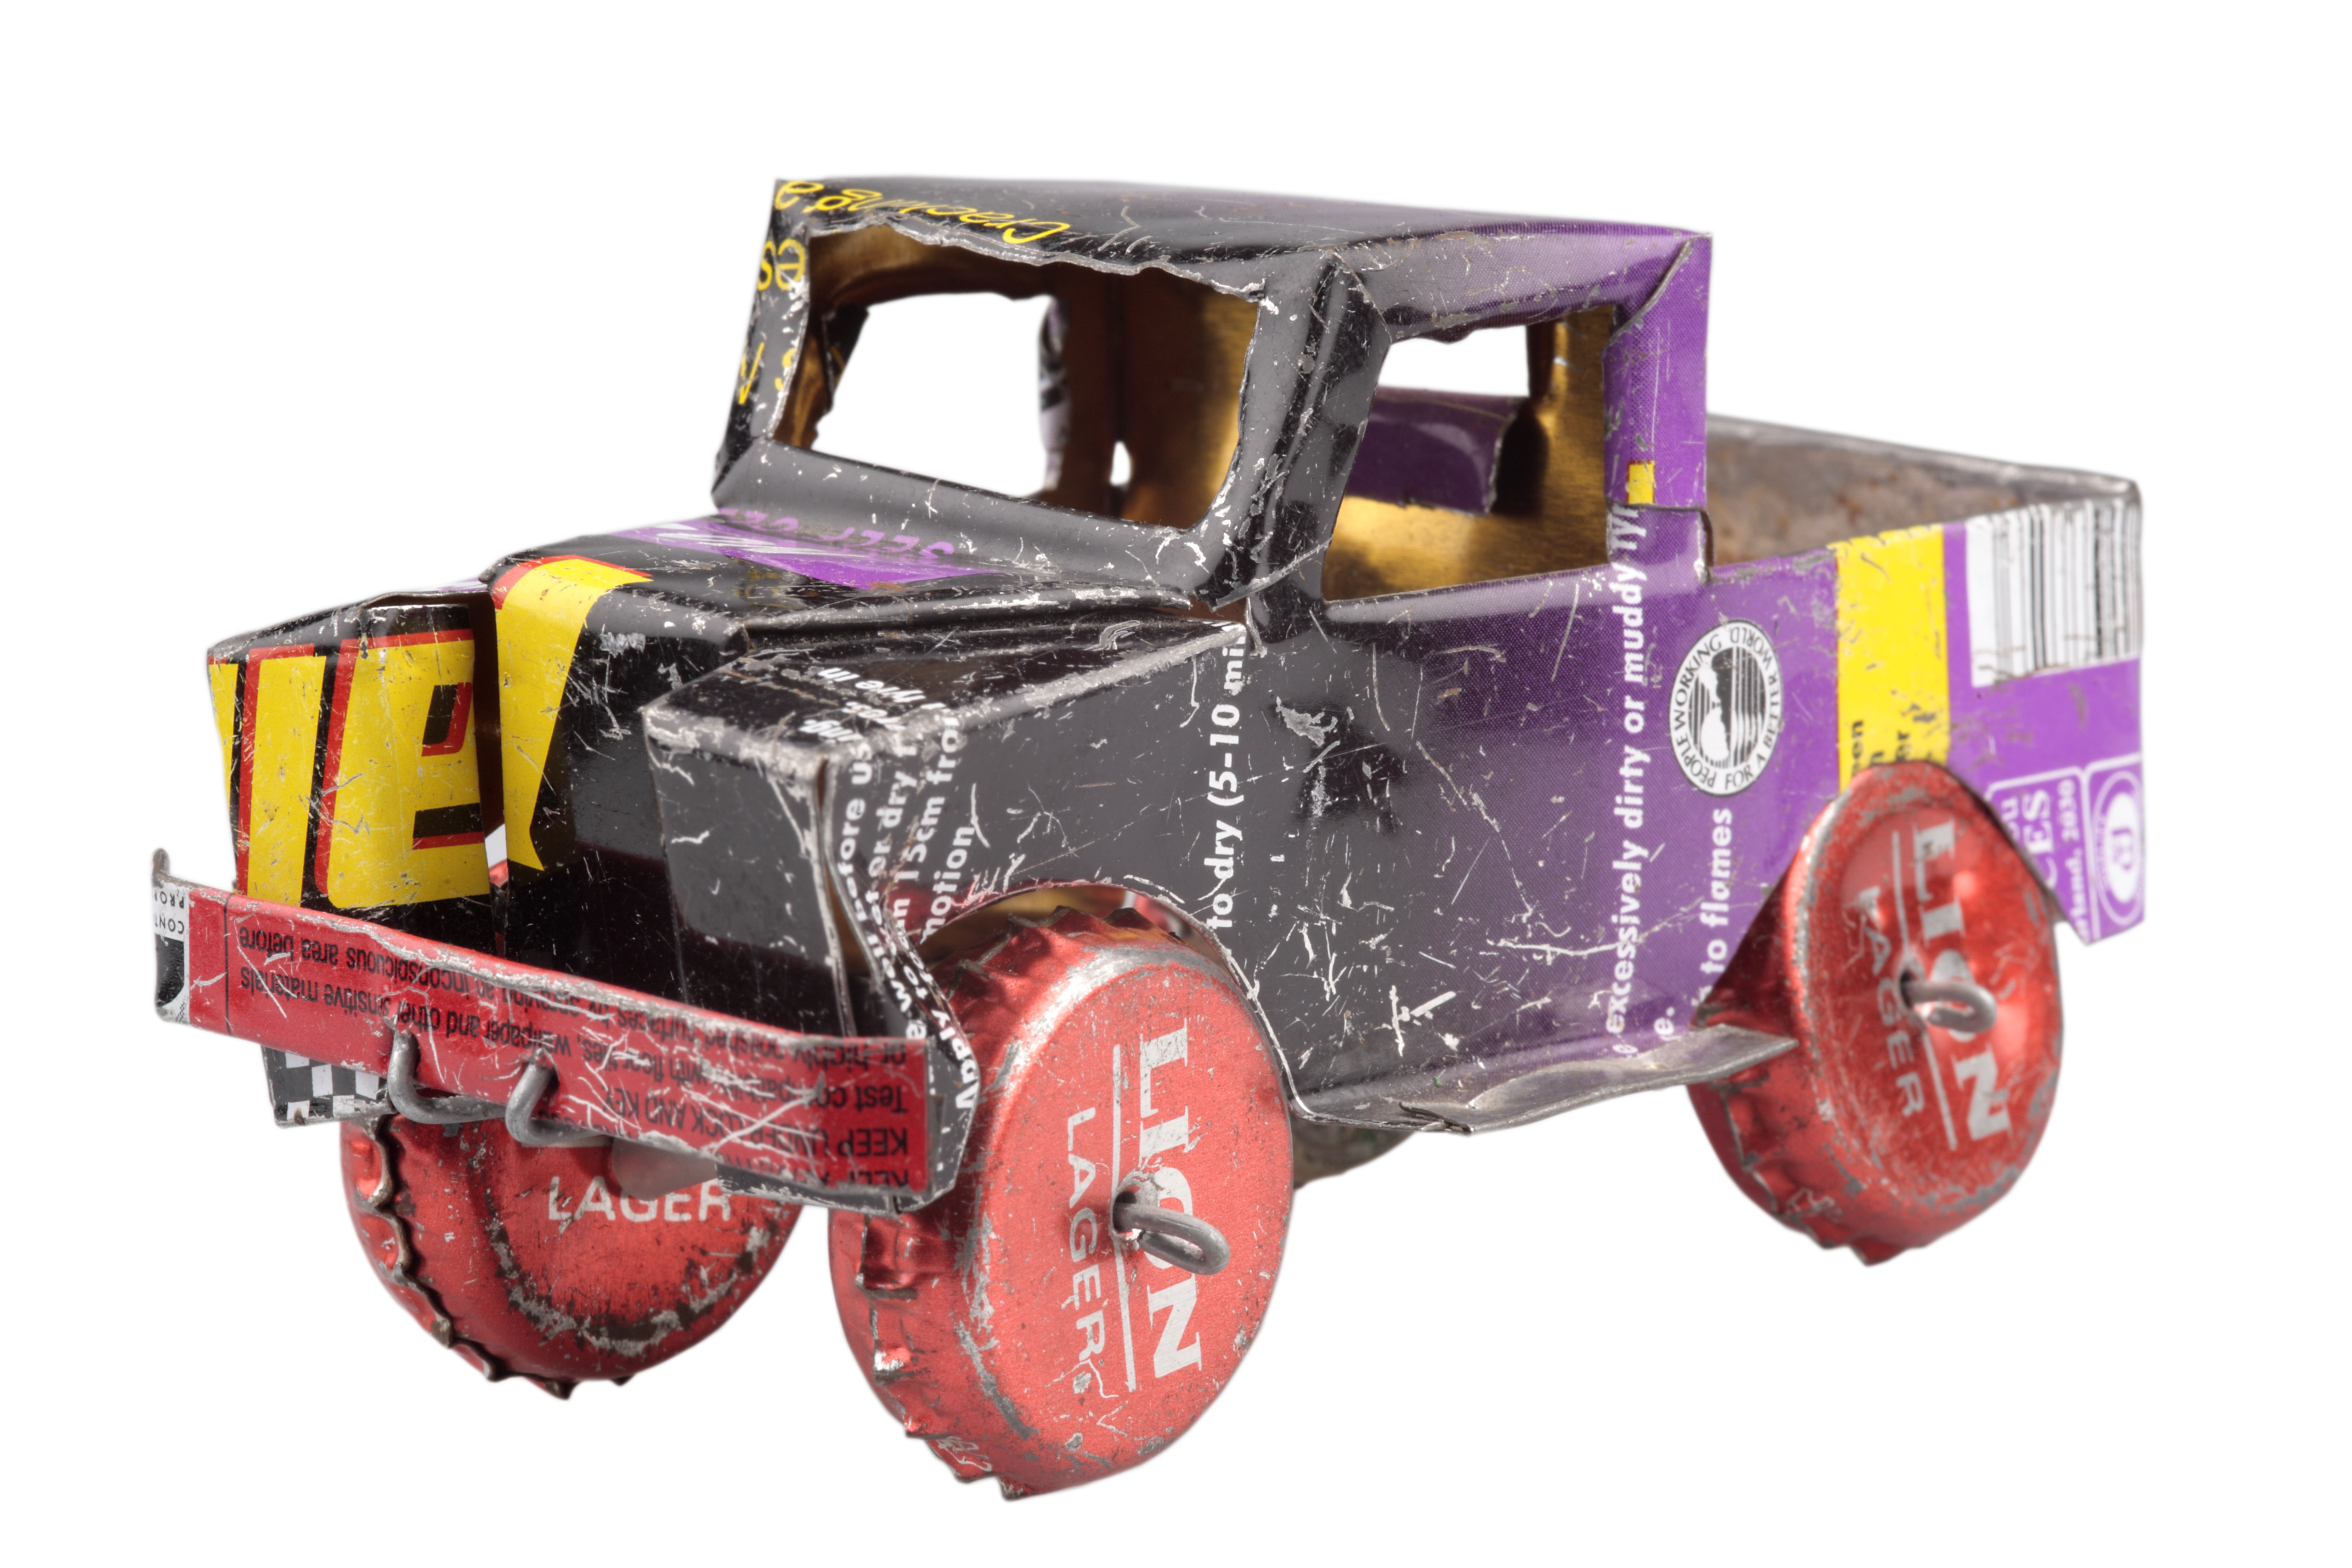 Toy truck made from drinks cans